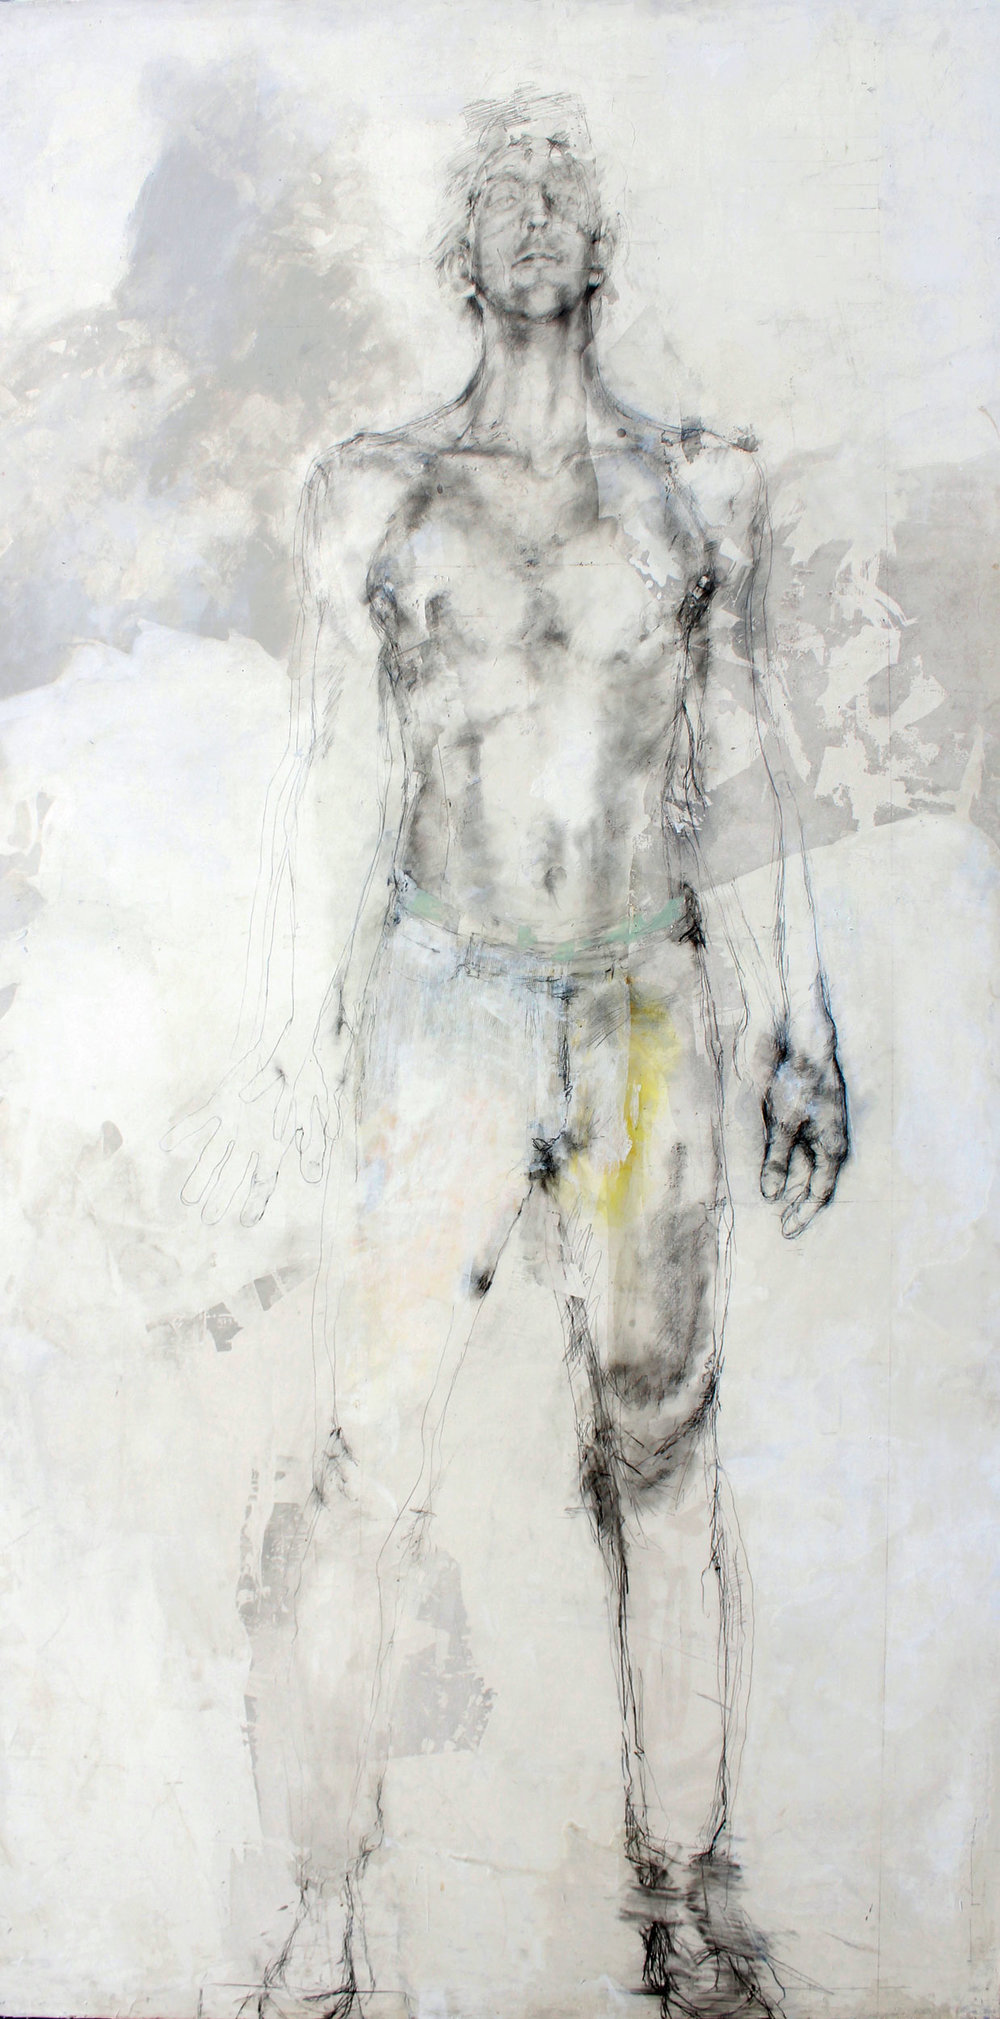 Barba Contemporary Art - Lola Del FresnoSee these and other great worksat Art Palm Springs - Booth #219.